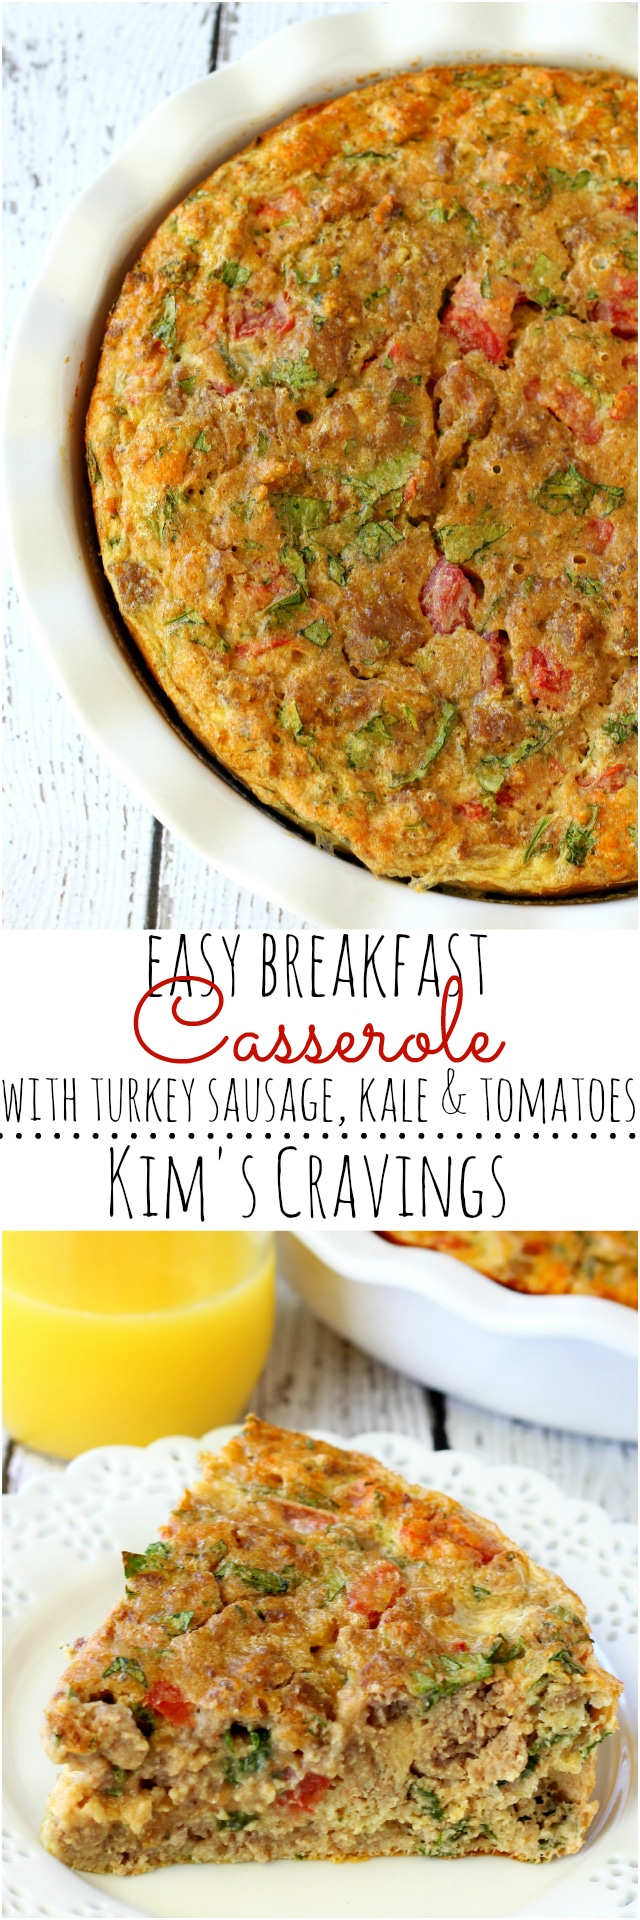 Easy Breakfast Casserole with turkey sausage, kale and tomatoes- perfect for whipping up when you have a large army (or a few friends) to feed and don't want to spend all morning in the kitchen.